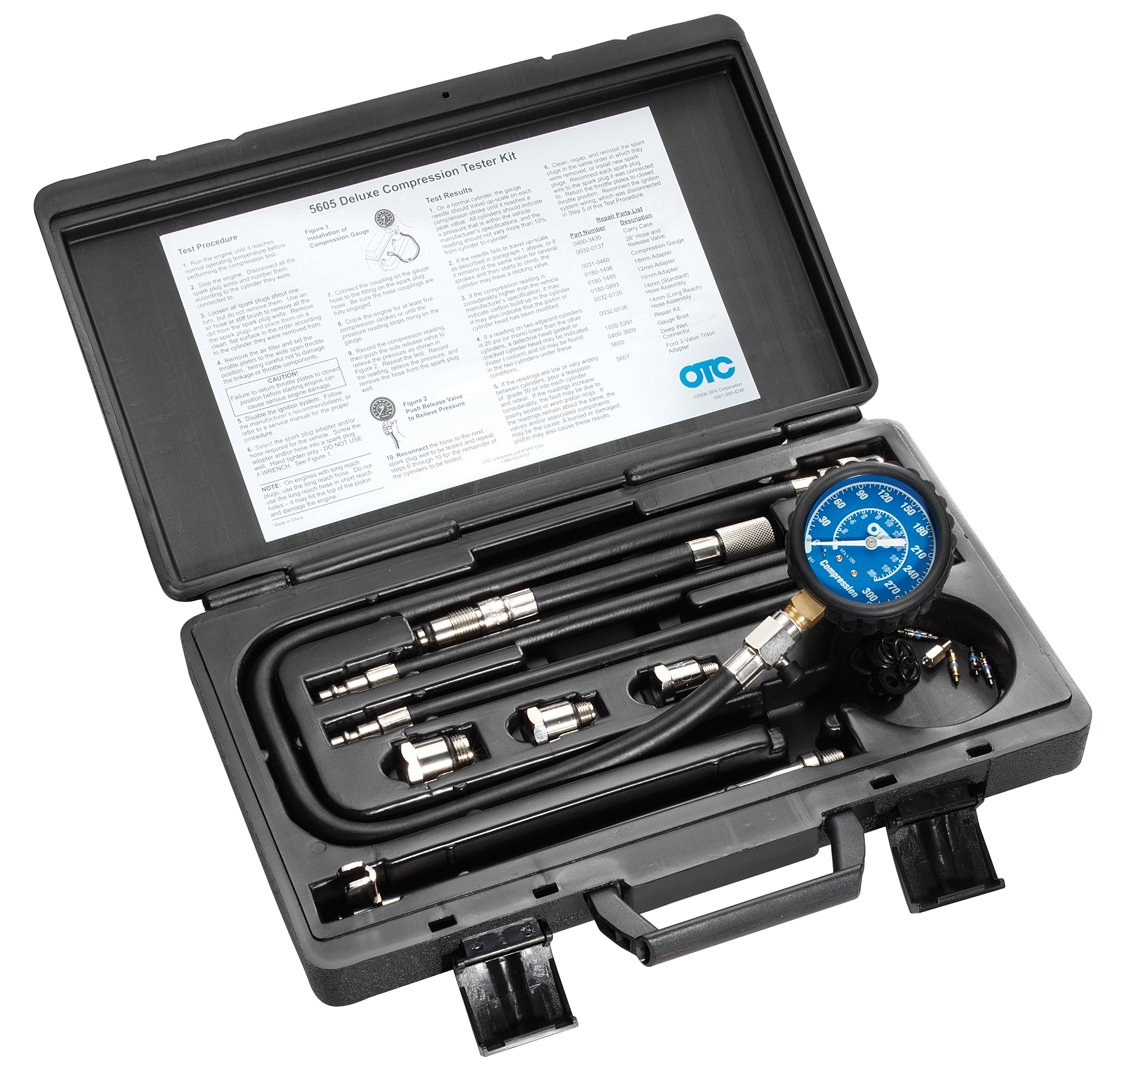 OTC 5605 Deluxe Compression Tester Kit with Carrying Case for Gasoline Engines